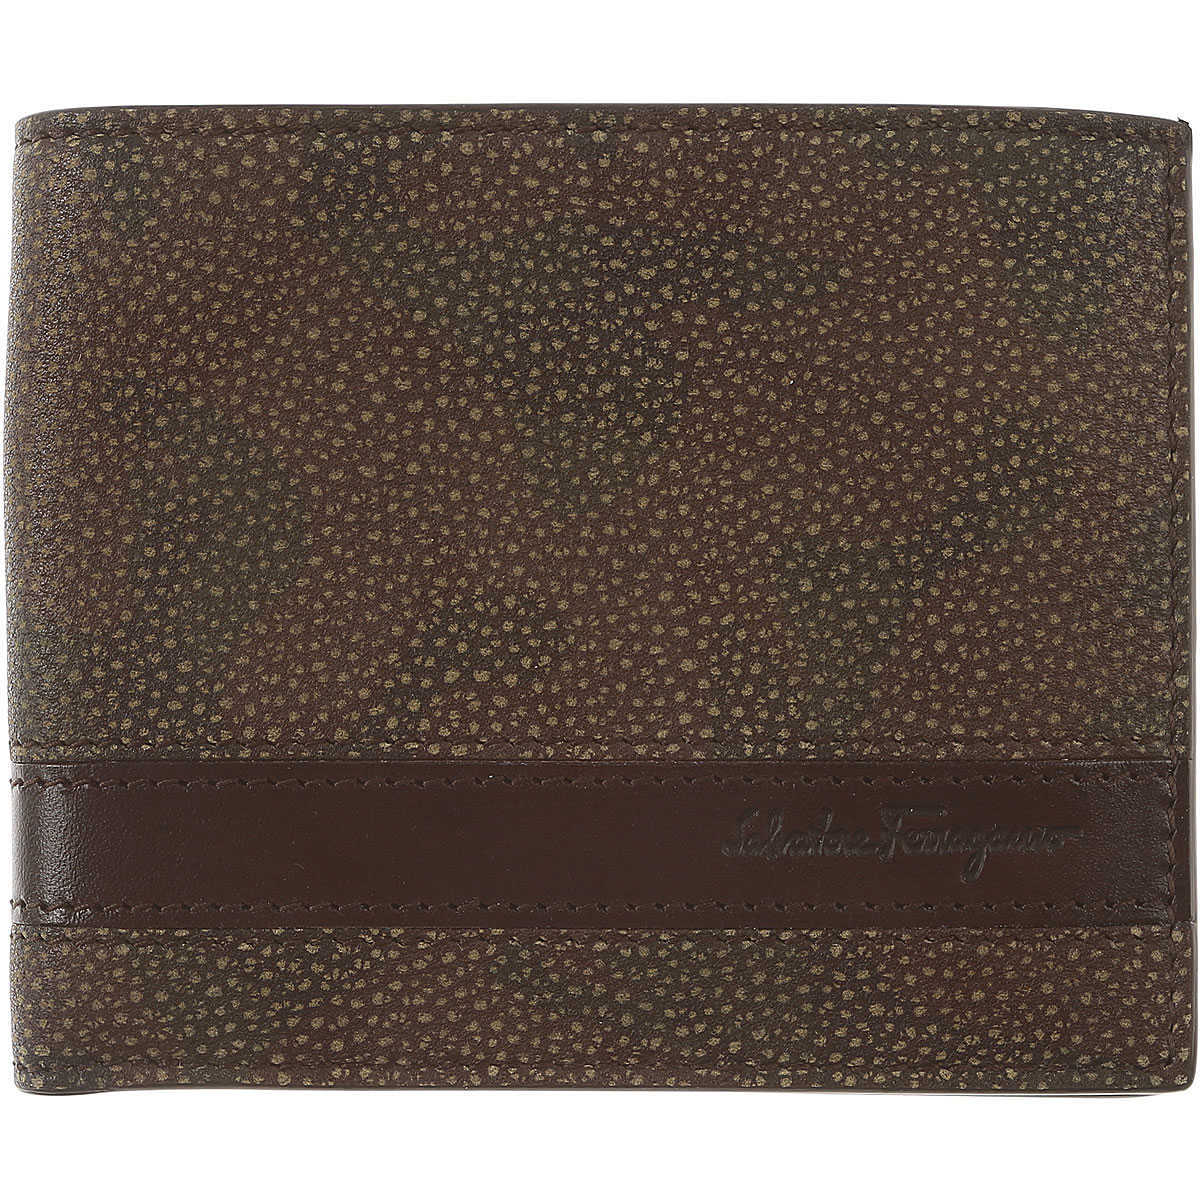 Salvatore Ferragamo Mens Wallets On Sale in Outlet Brown DK - GOOFASH - Mens WALLETS